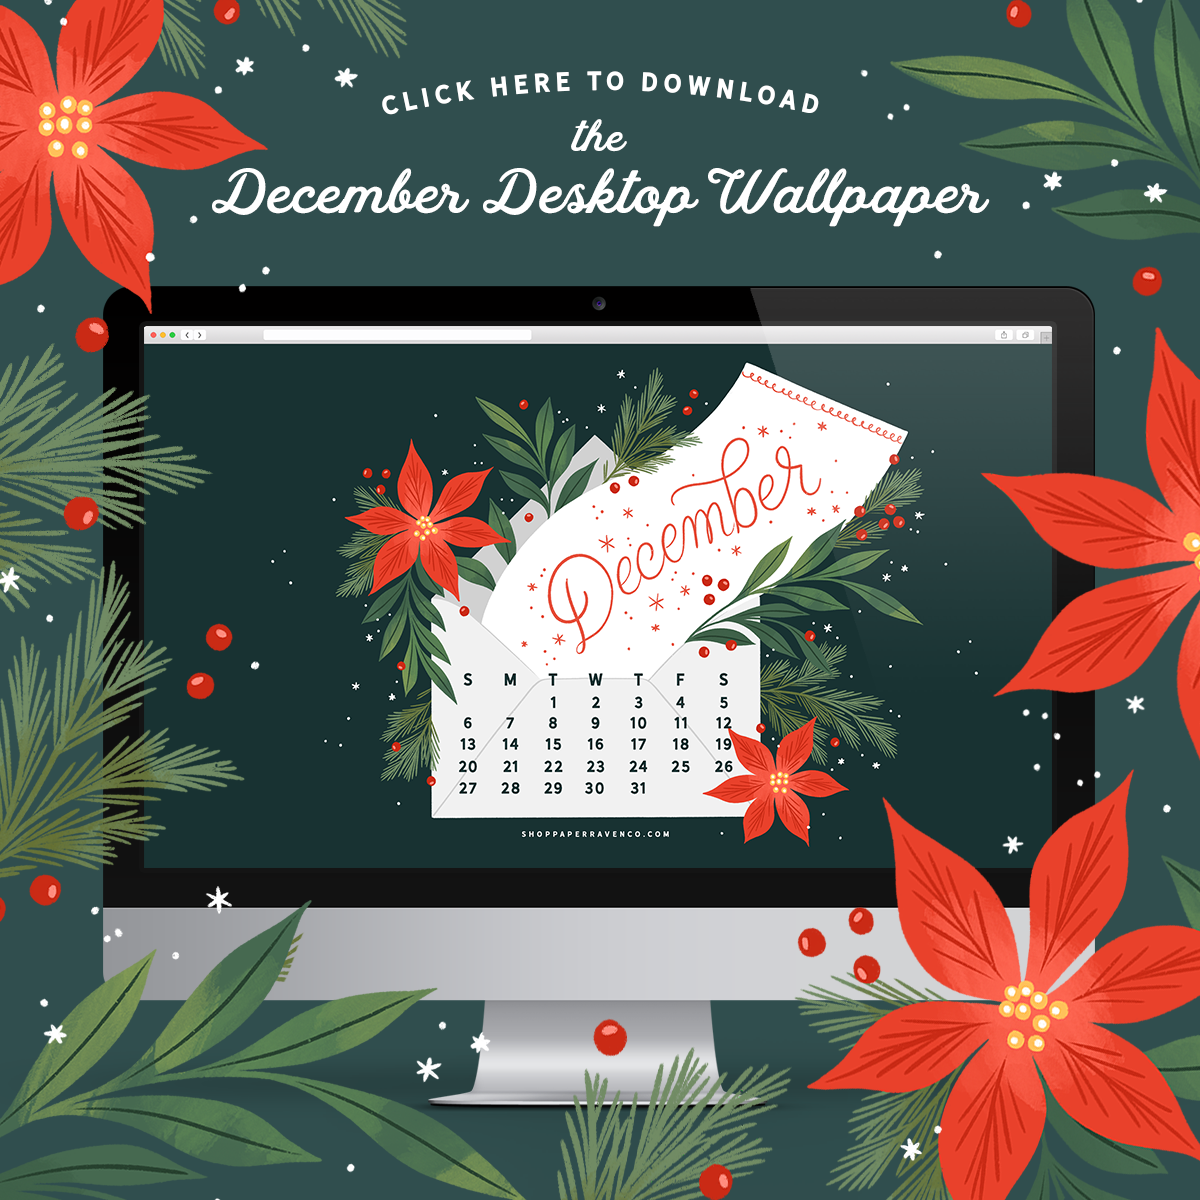 December 2020 Illustrated Desktop Wallpaper by Paper Raven Co. #dressyourtech #desktopwallpaper #holidaywallpaper